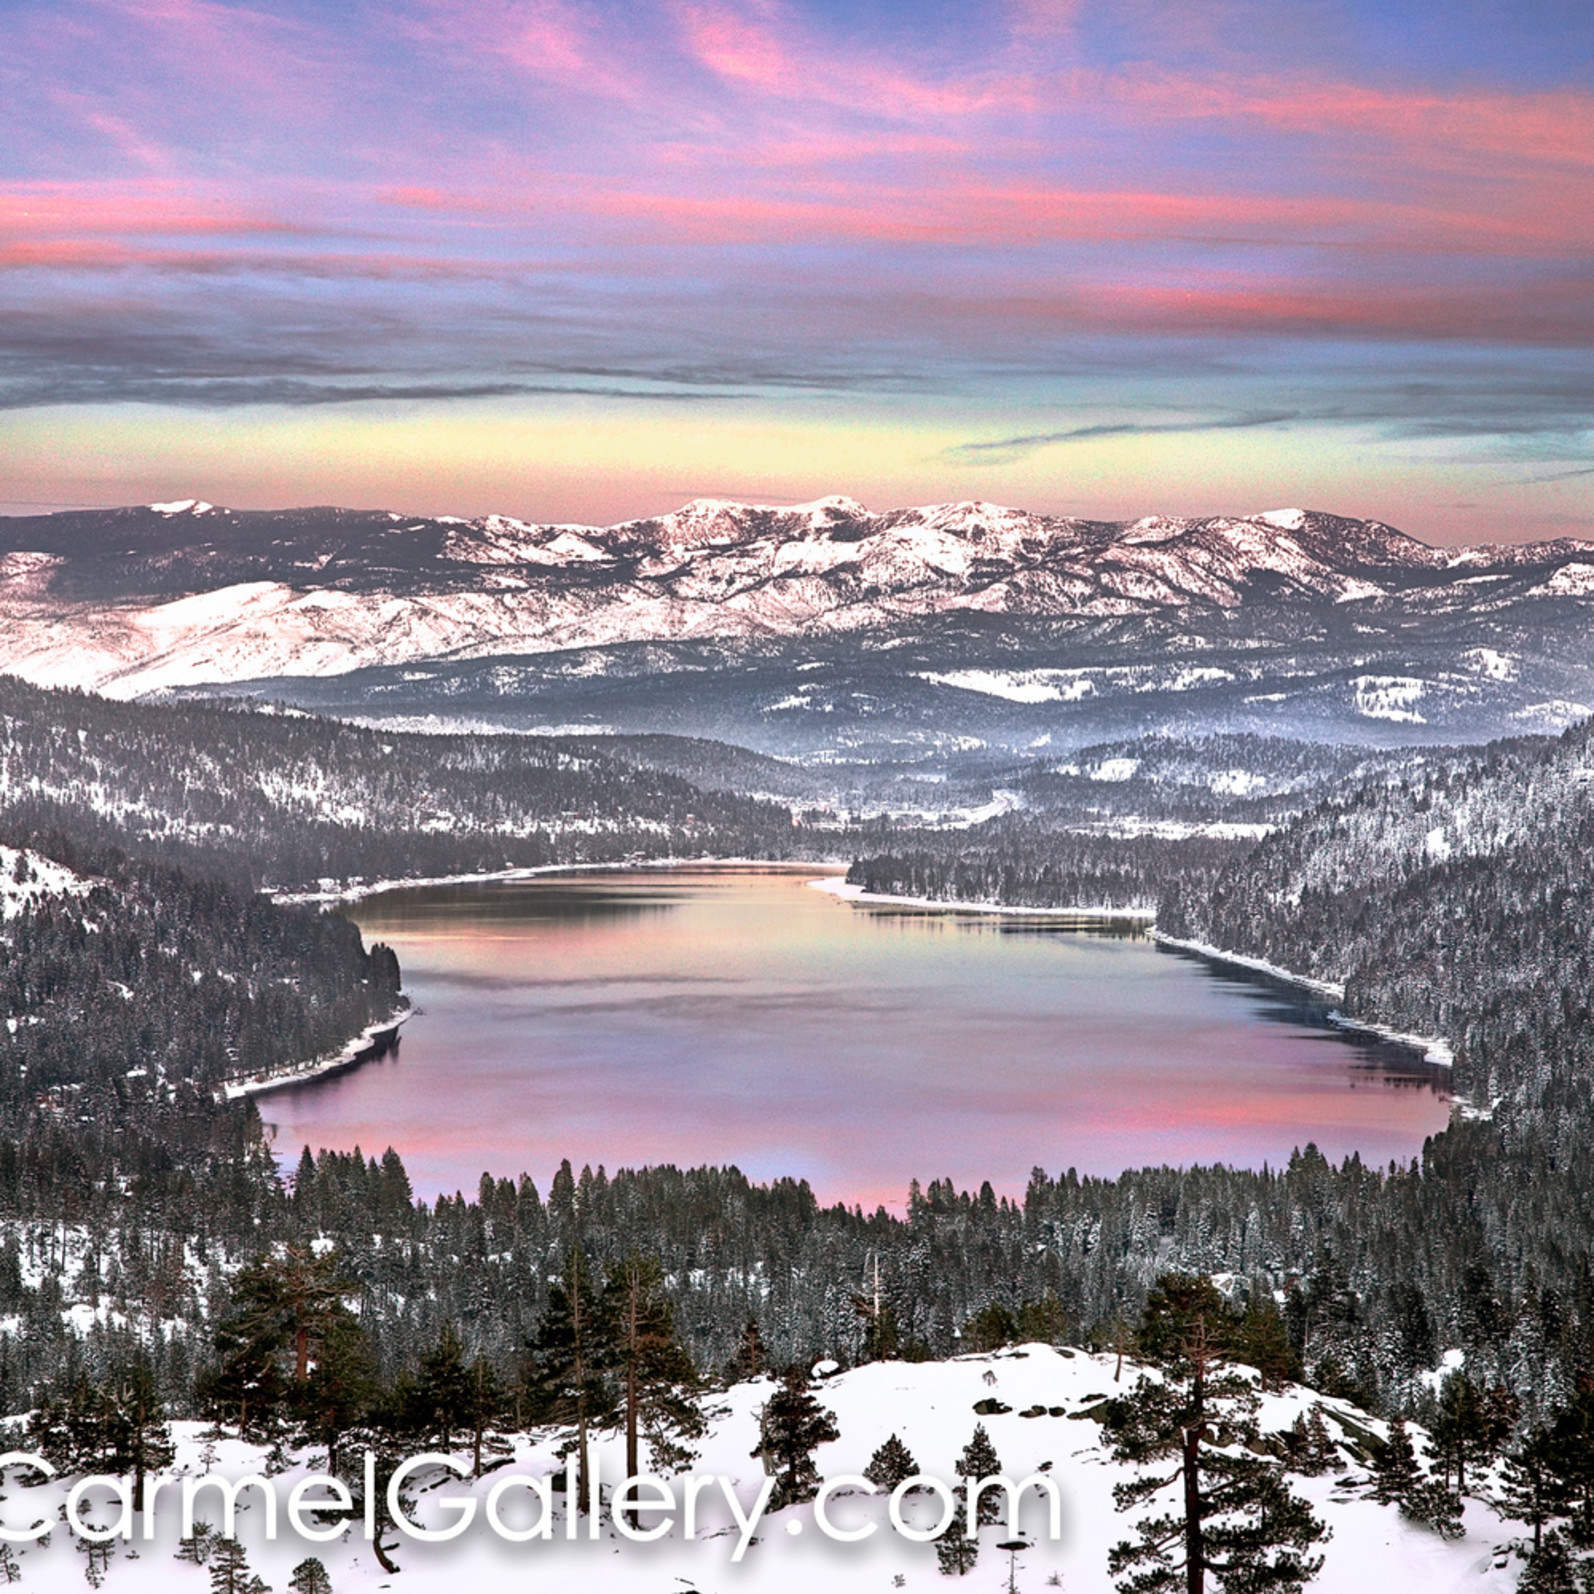 December sunset donner lake vw4hta